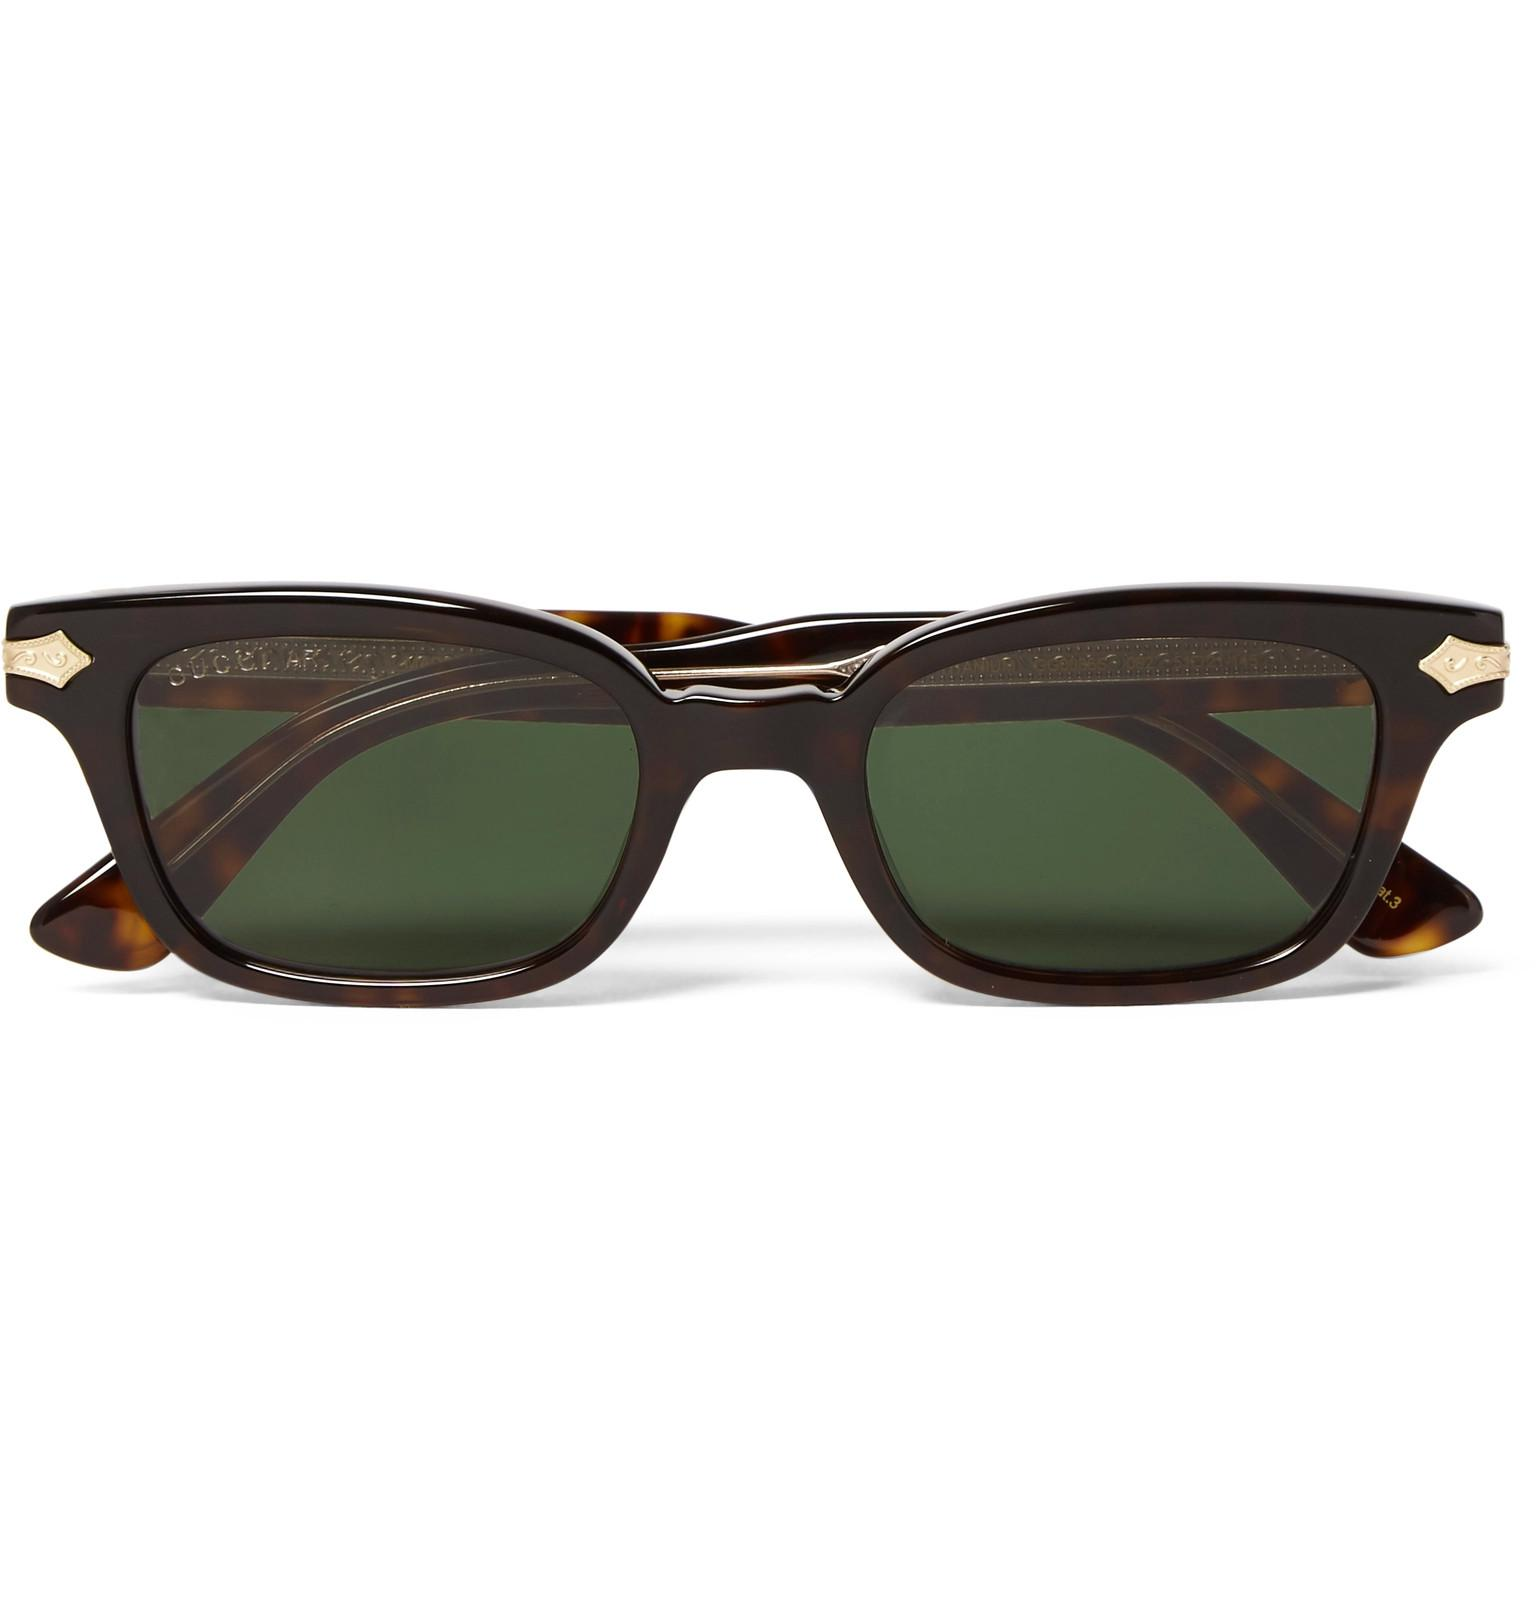 9f3c41437c3 Gucci Square-frame Tortoiseshell Acetate And Gold-tone Sunglasses in Brown  for Men